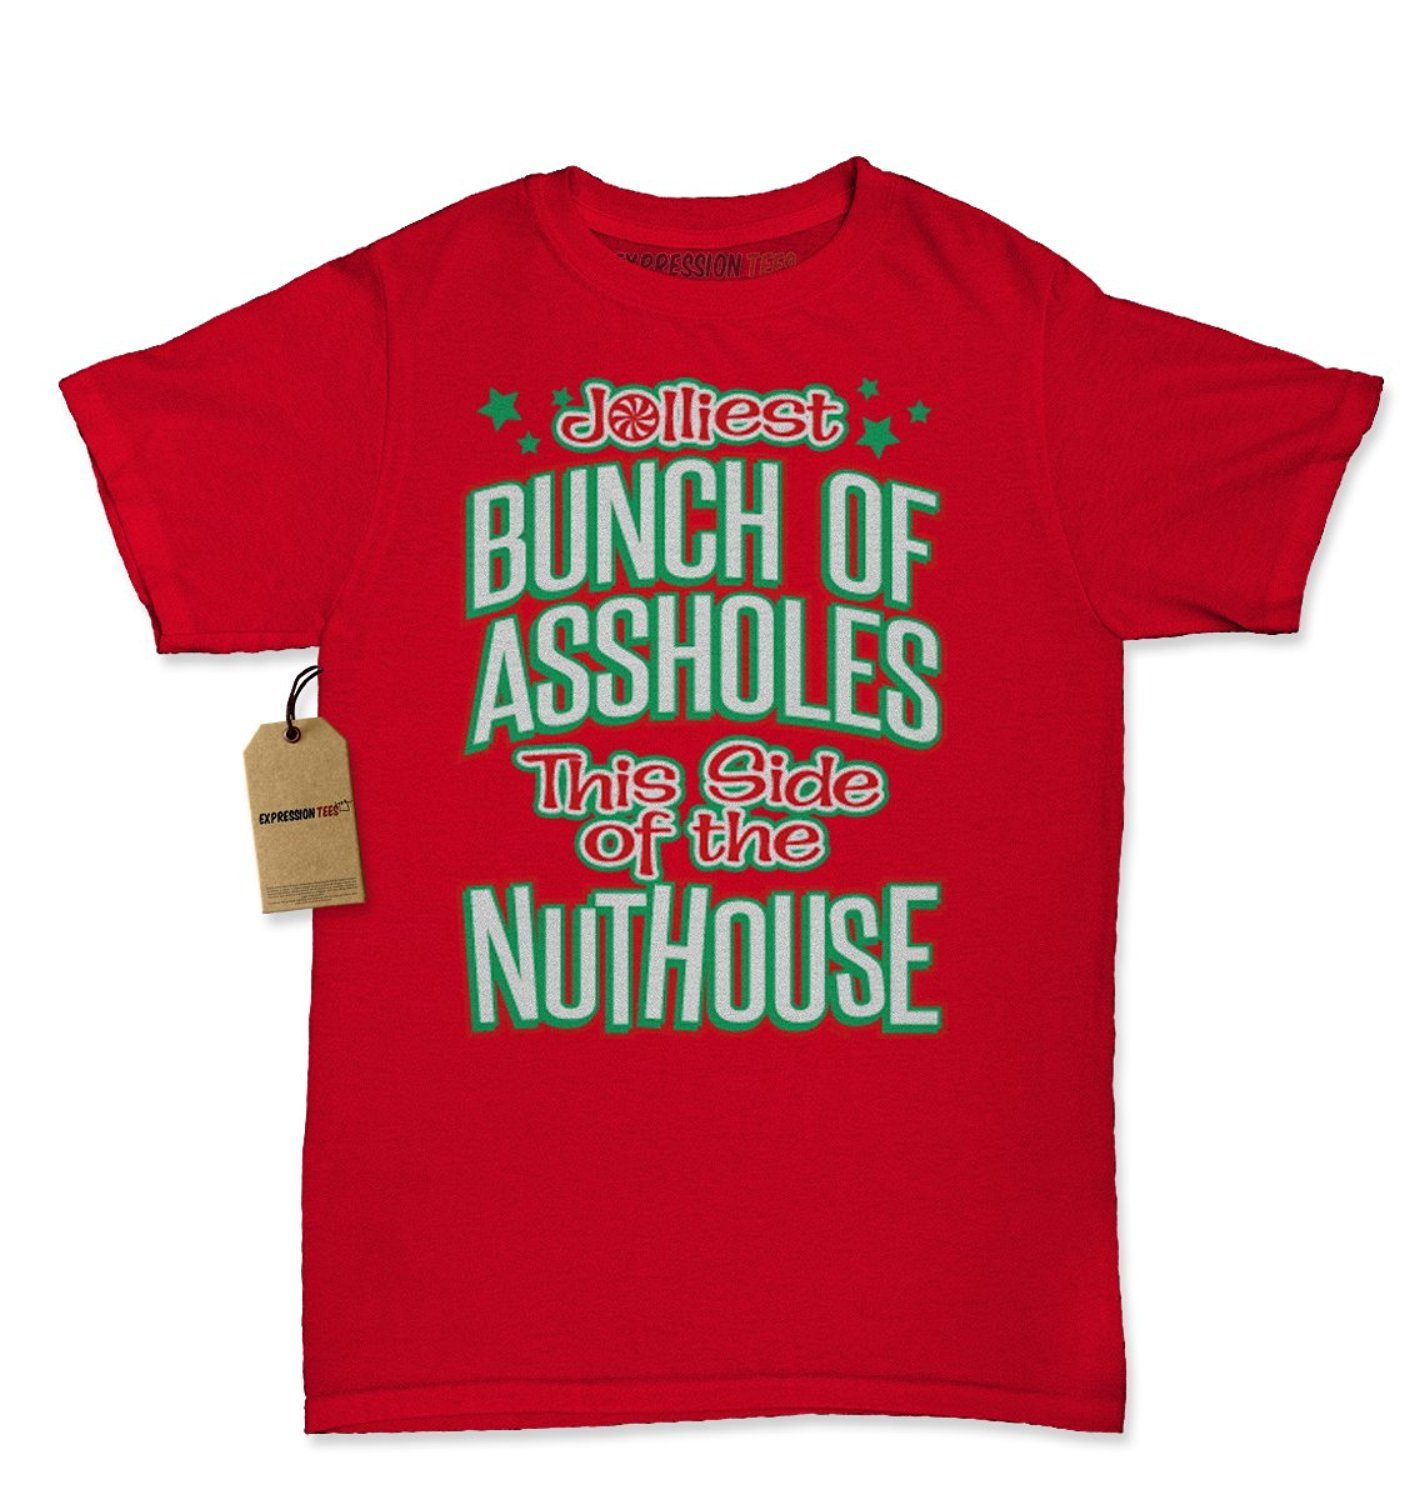 Expression Tees Jolliest Bunch of Assholes This Side of the Nuthouse Womens